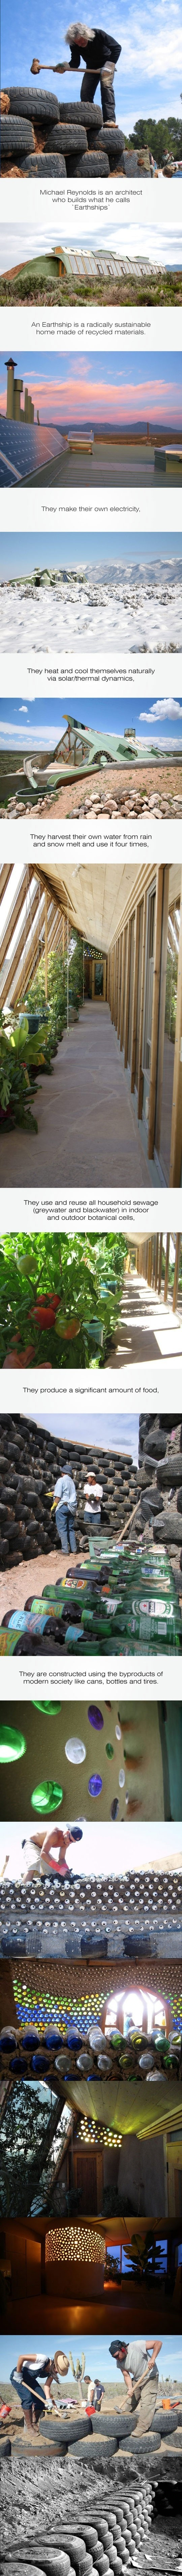 Earthship home. Just awesome. I really, really want one!!!!!!!!!!!!!!!!